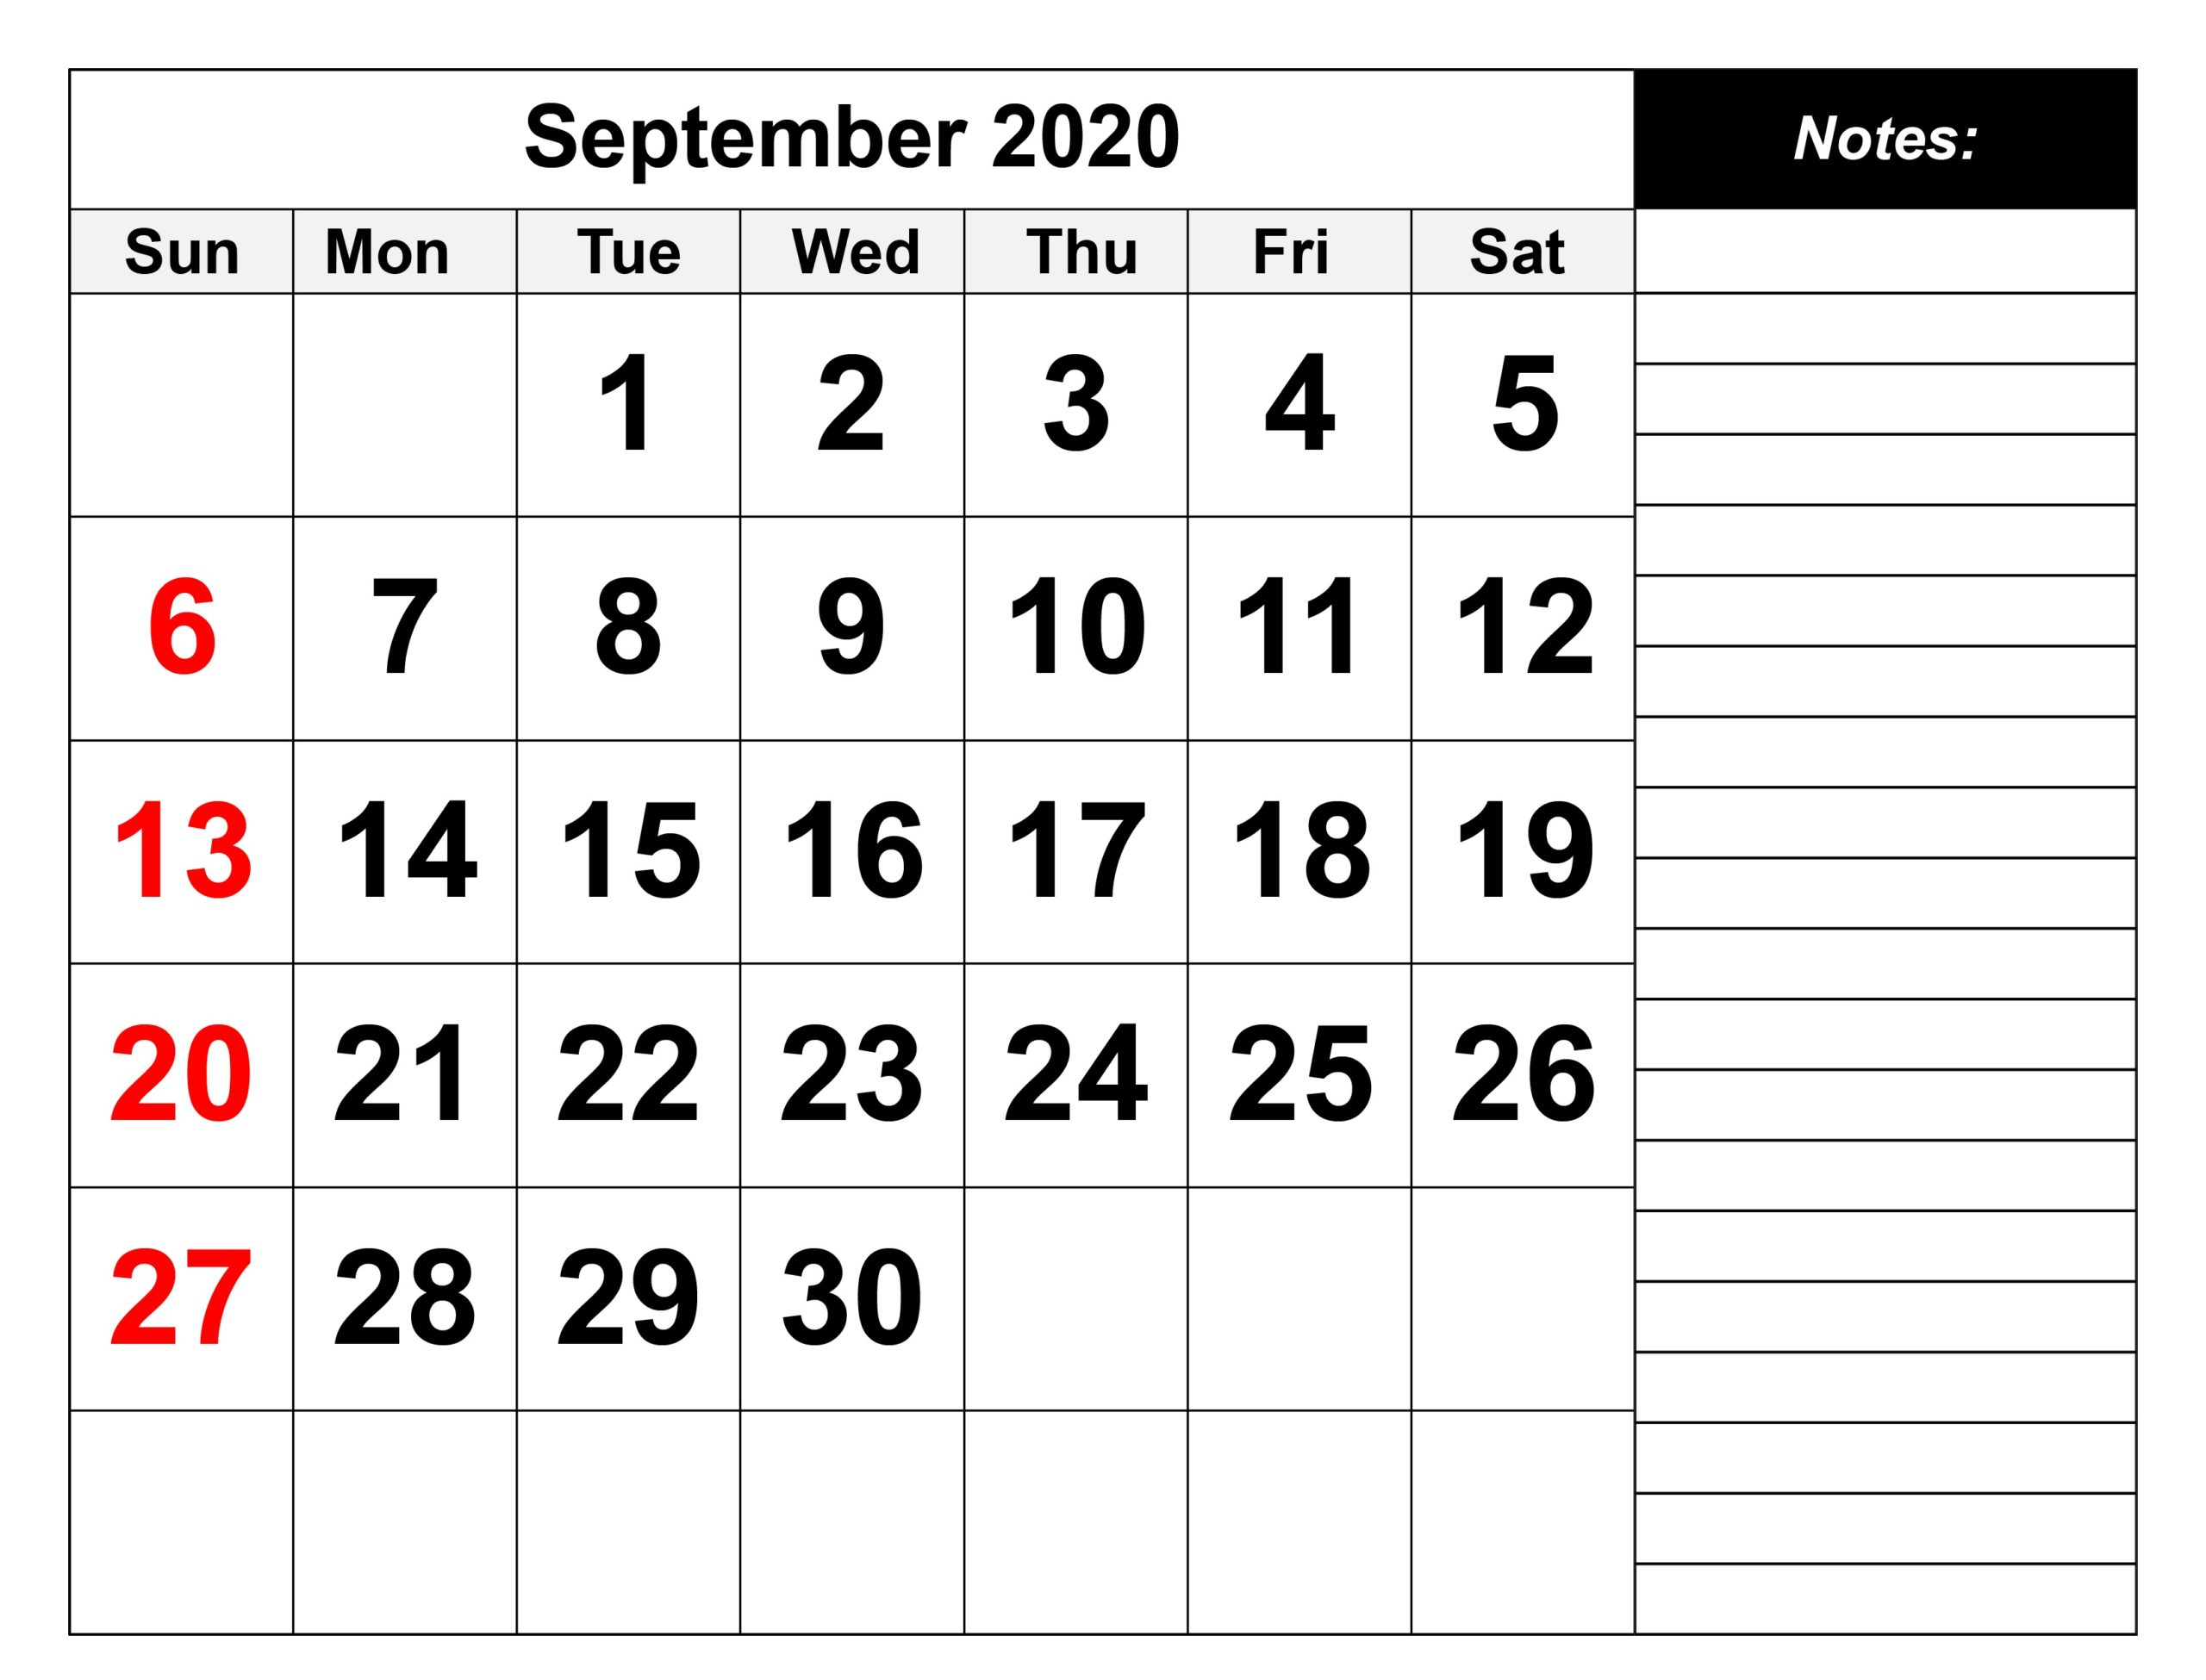 Blank September 2020 Calendar With Notes